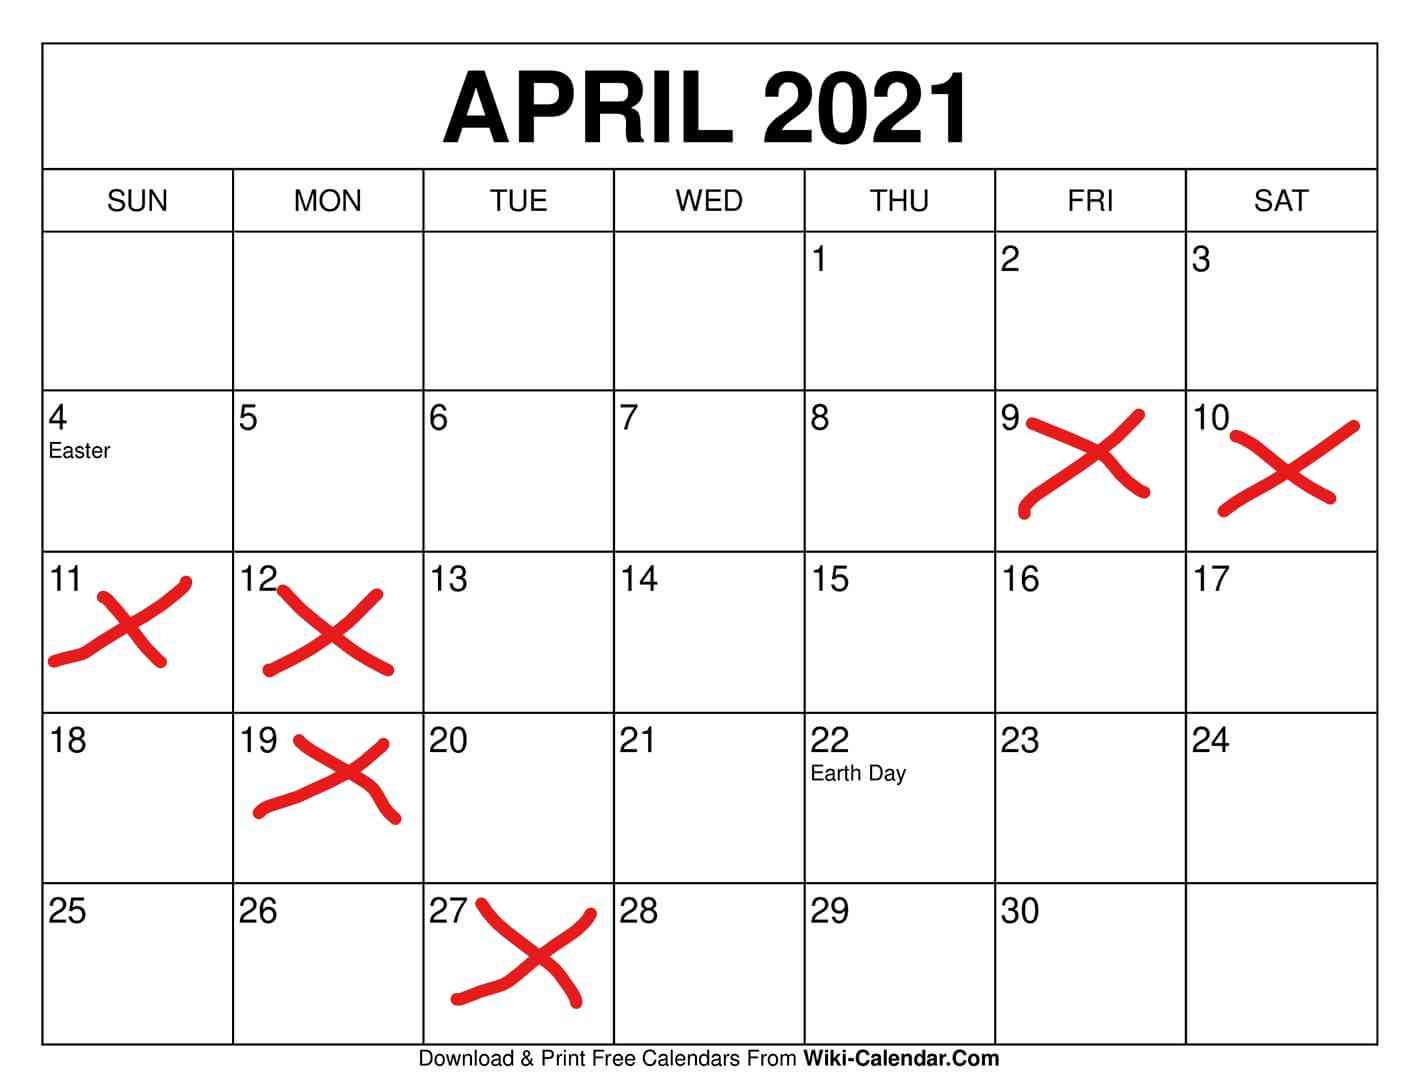 APRIL CLOSED DAYS